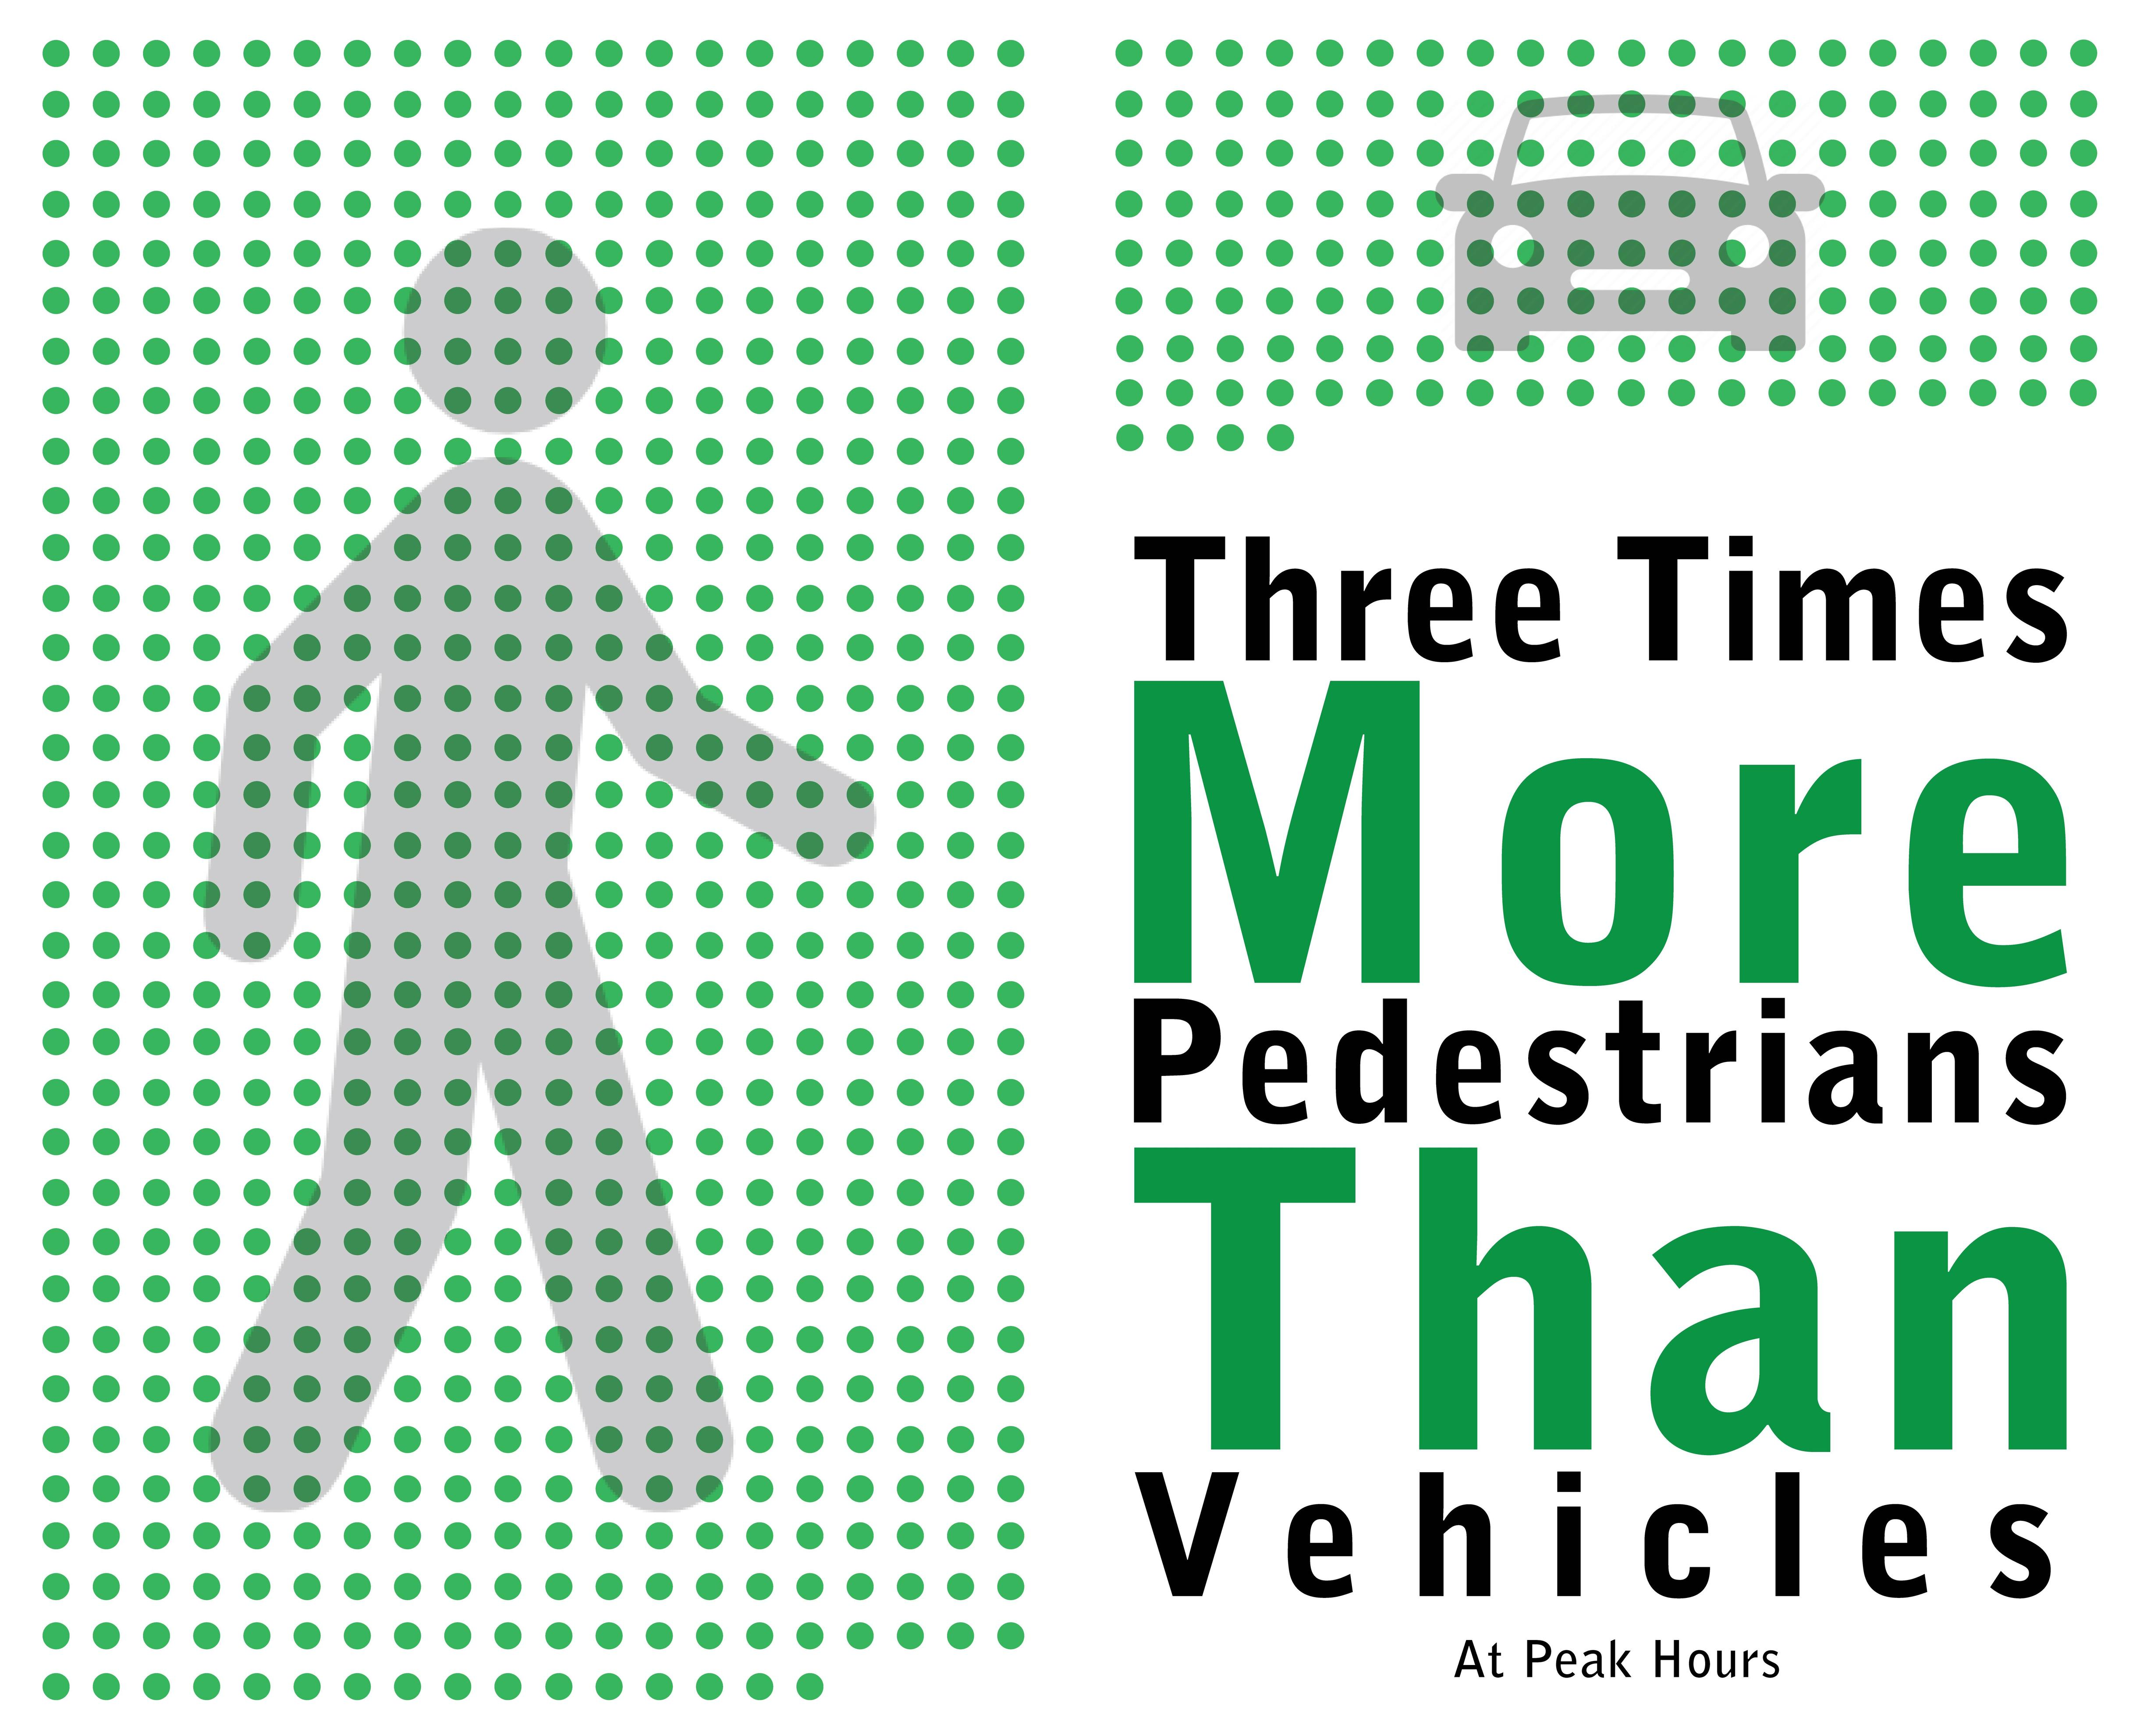 In illustration showing the differences between the amount of pedestrians and cars during peak hours. This is represented by multiple small green dots.